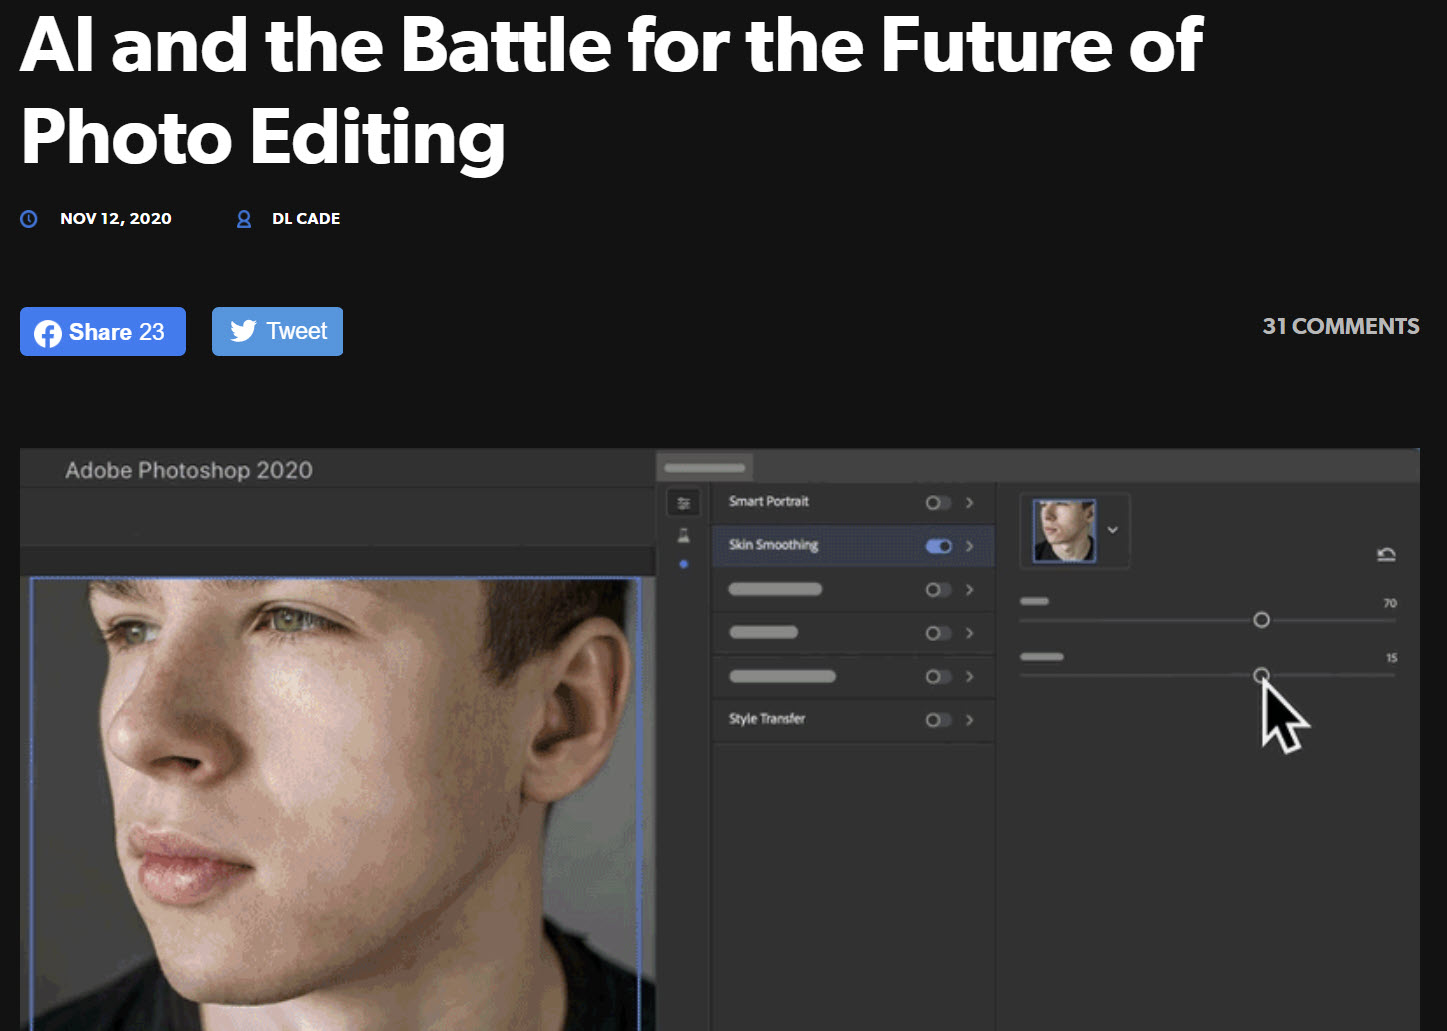 DL Cade - AI and the Battle for the Future of Photo Editing